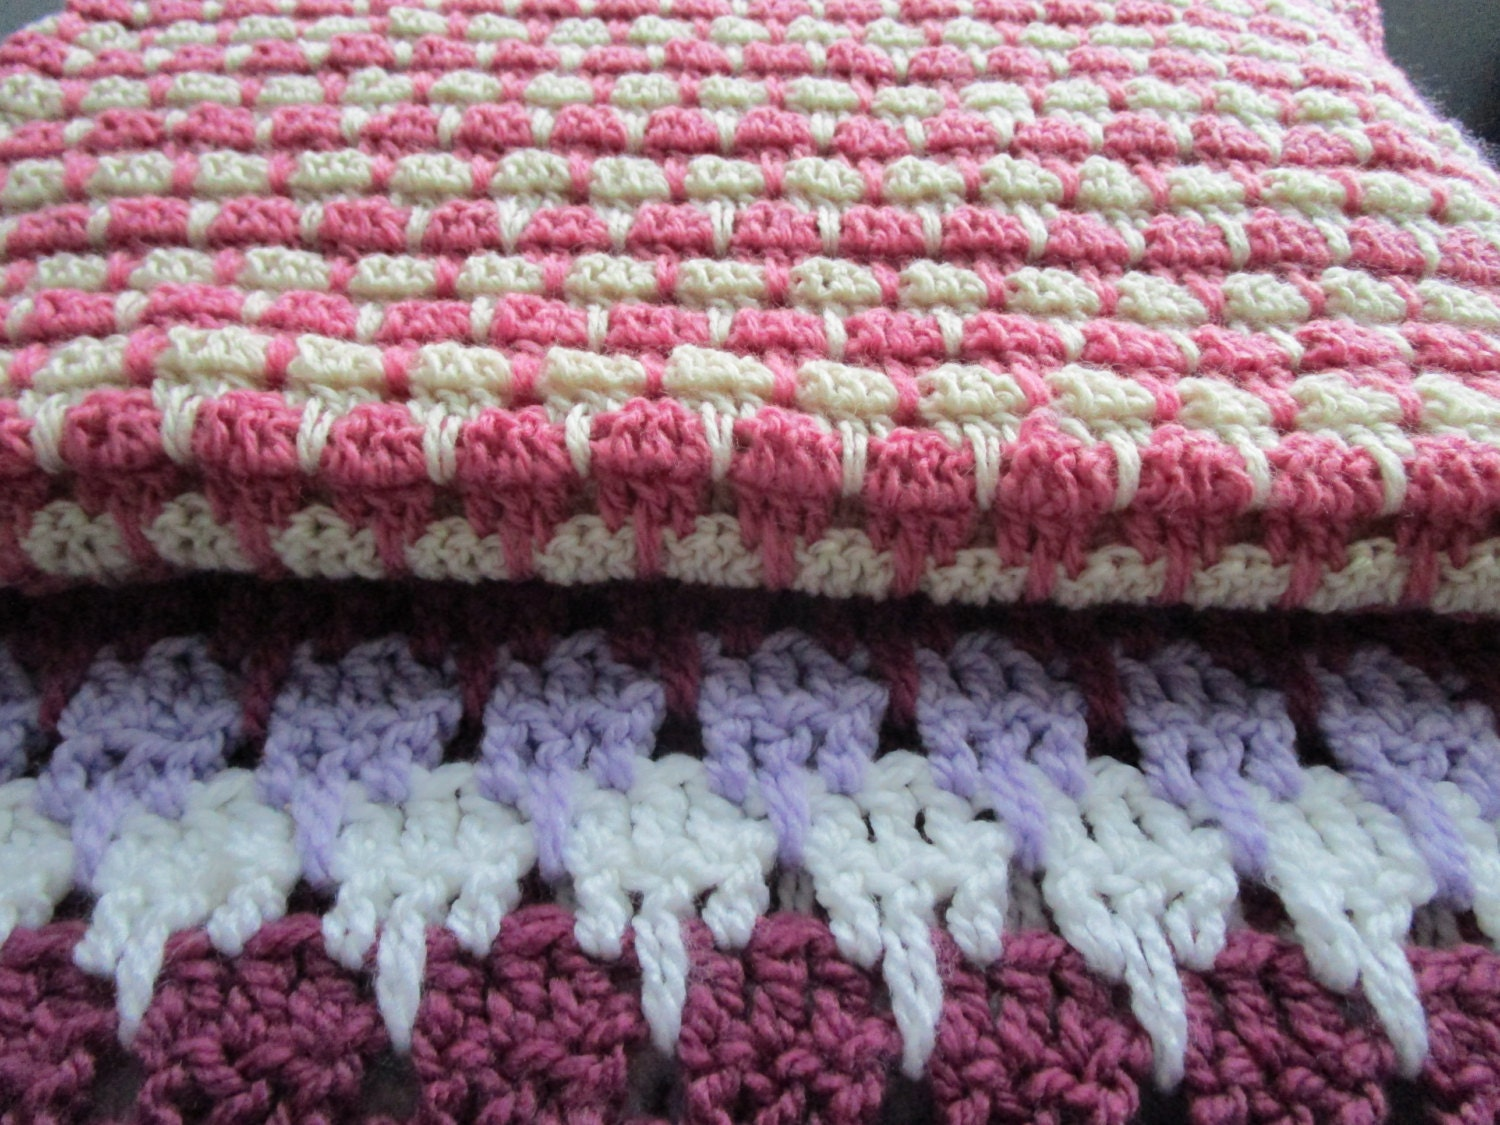 Larksfoot Crochet Baby Blanket Pattern : Easy Crochet Blanket Pattern Arcade Stitch Larksfoot Stitch